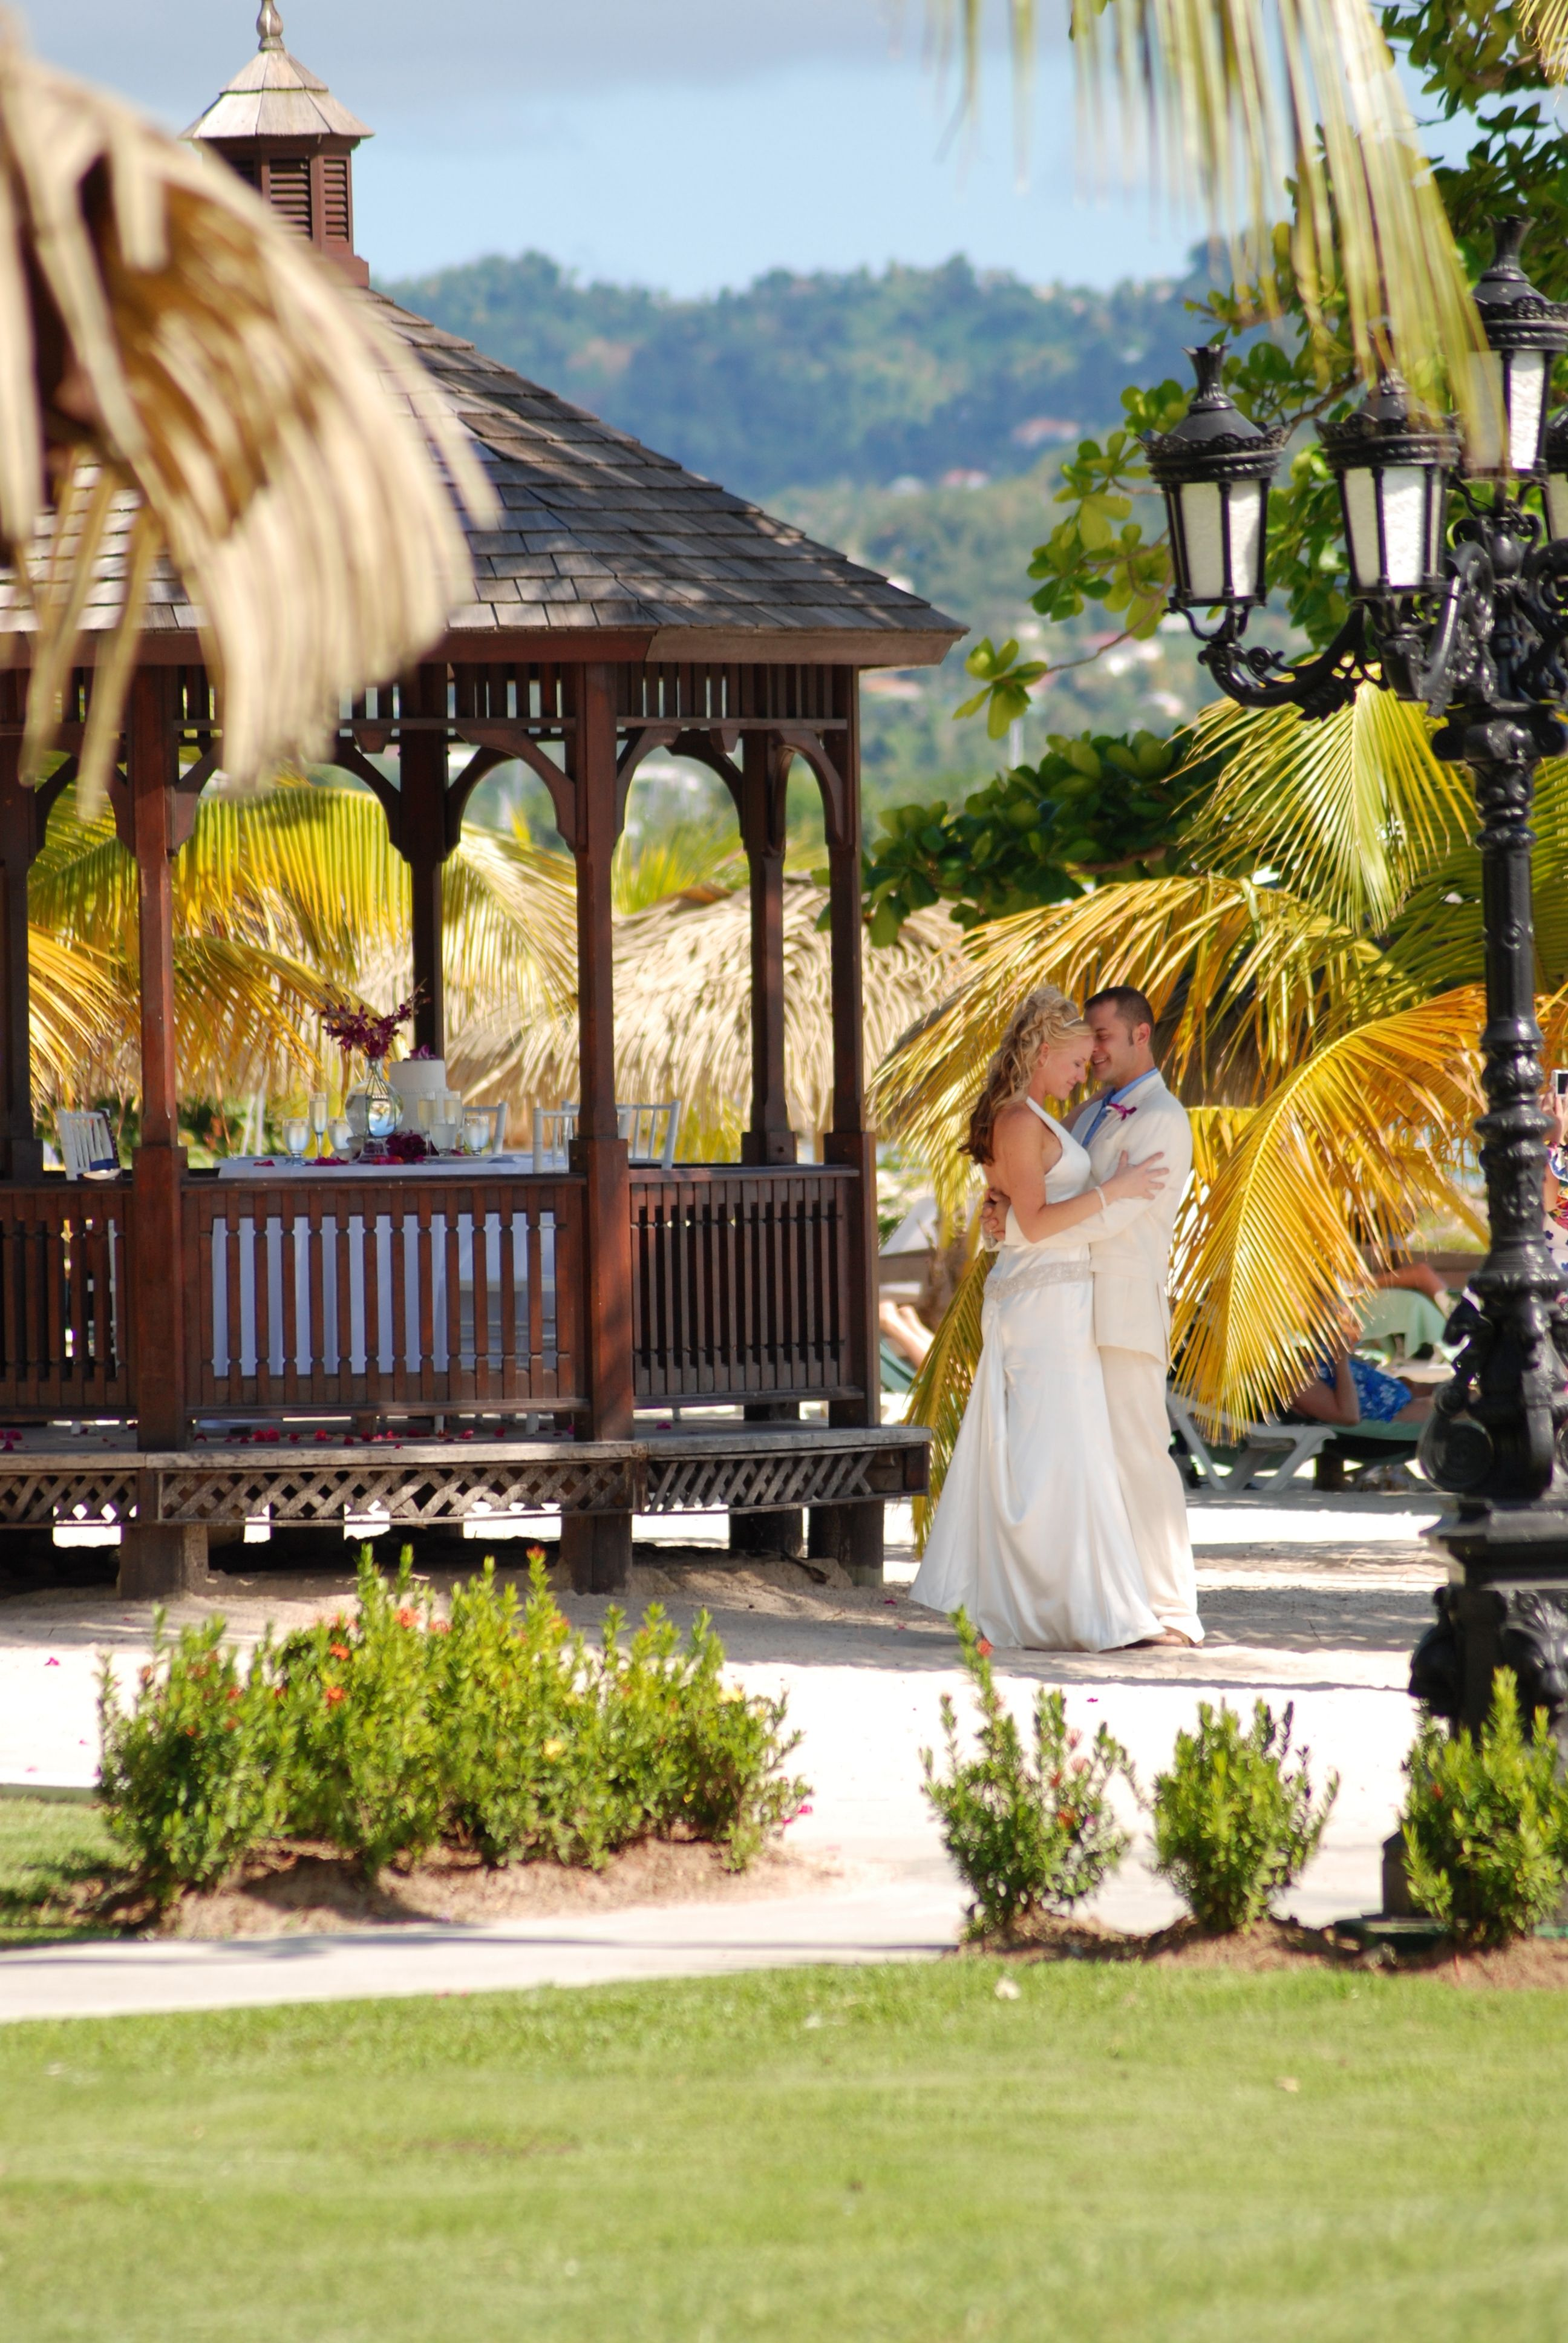 St Lucia Wedding ™� This Is Where I Want To Bee His Wife: Wedding Venues St Lucia At Websimilar.org